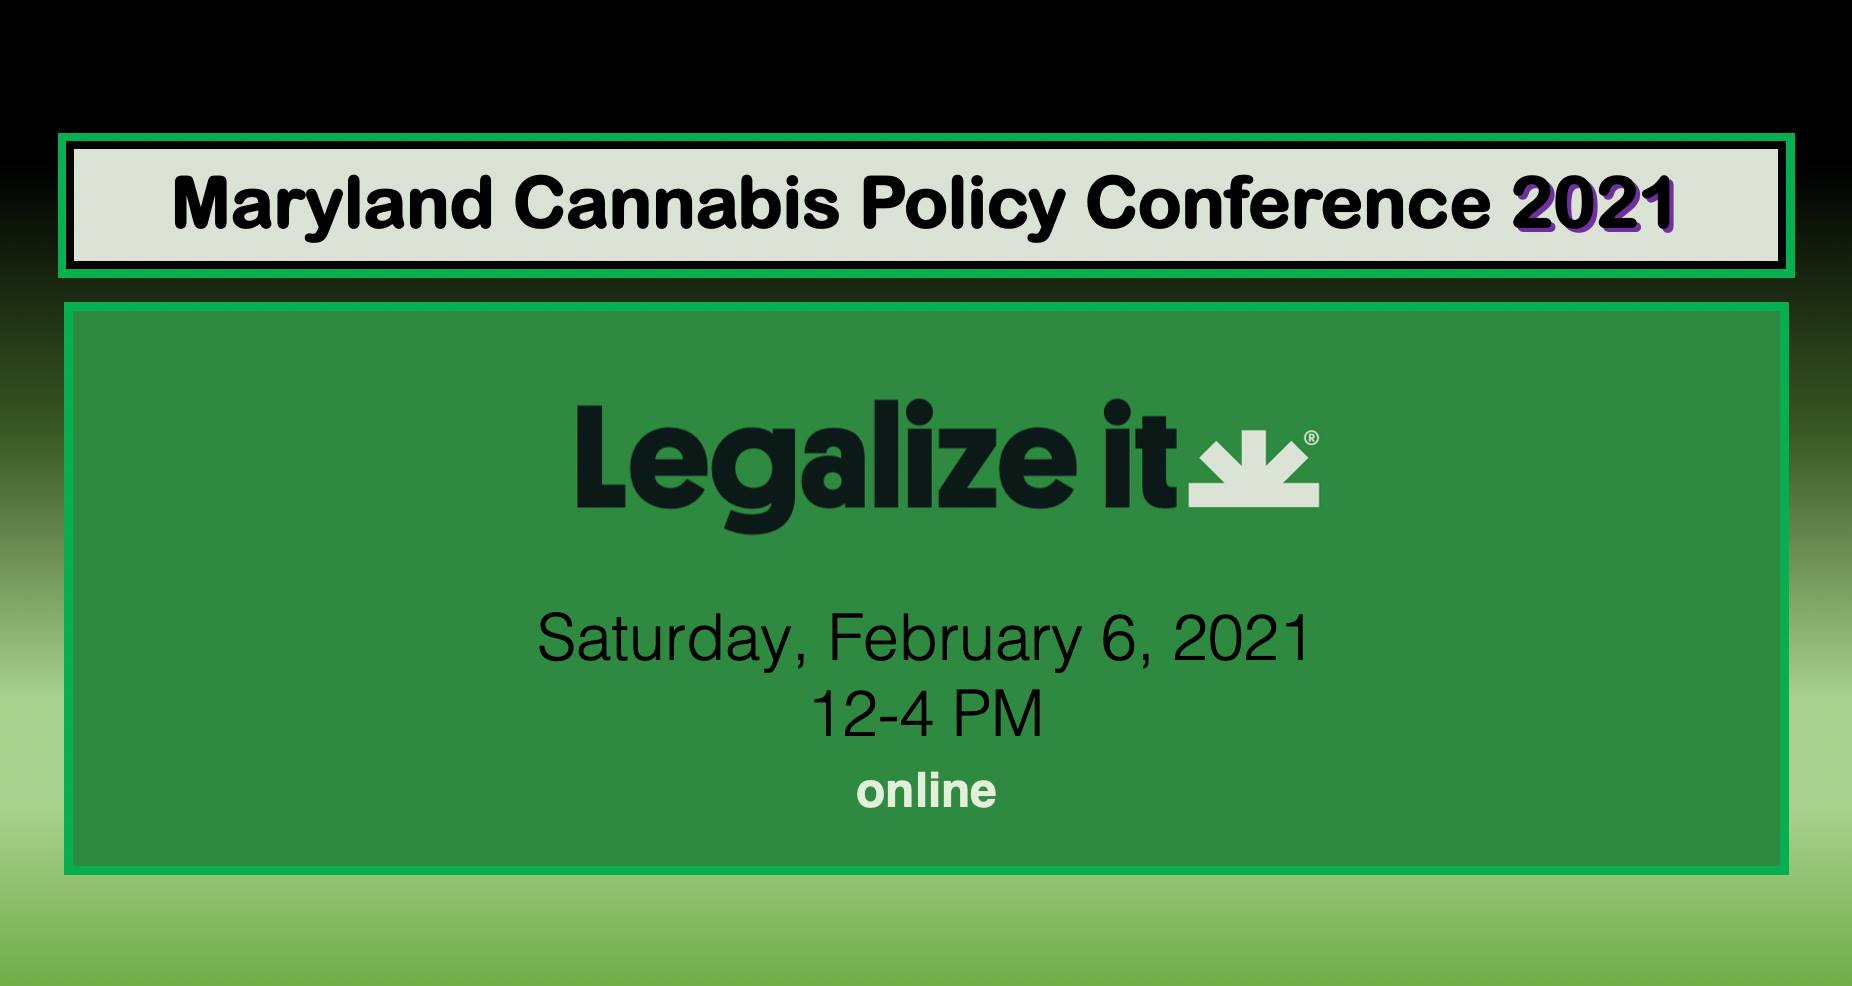 MD NORML Maryland Cannabis Policy 2021 (online) February 6 2021